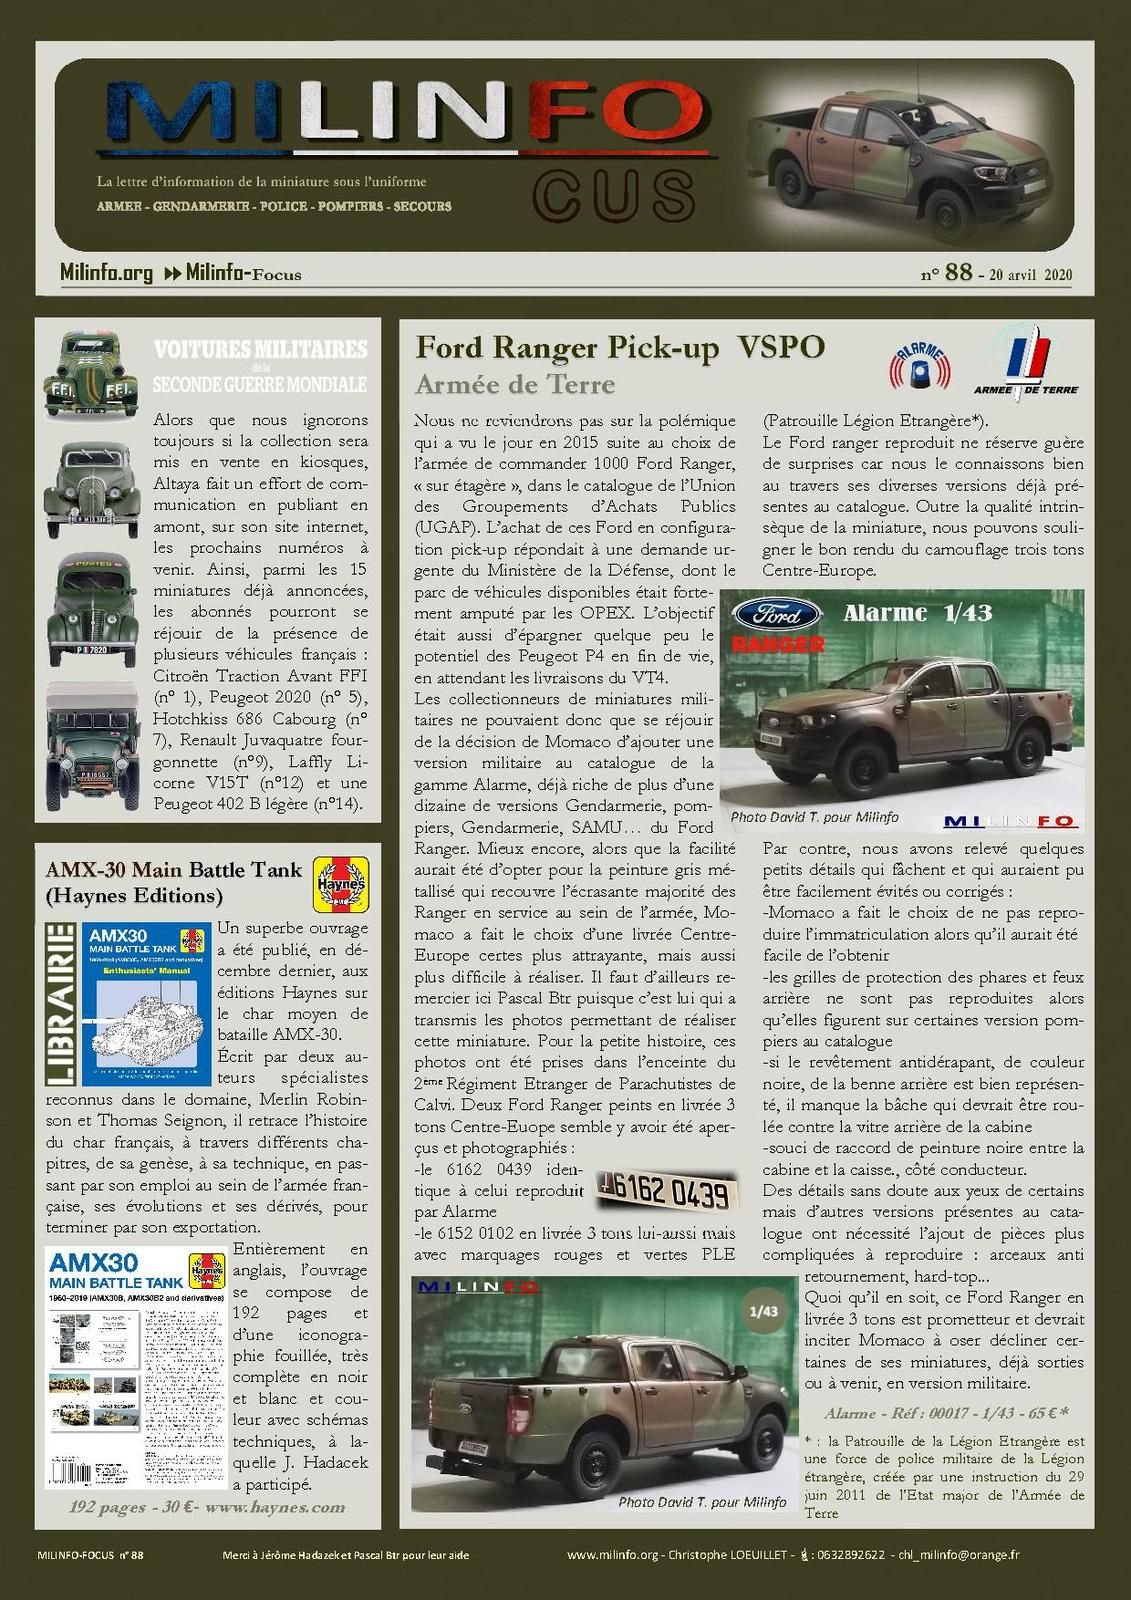 Milinfo-Focus n° 88 : Ford Ranger 3 tons Centre-Europe